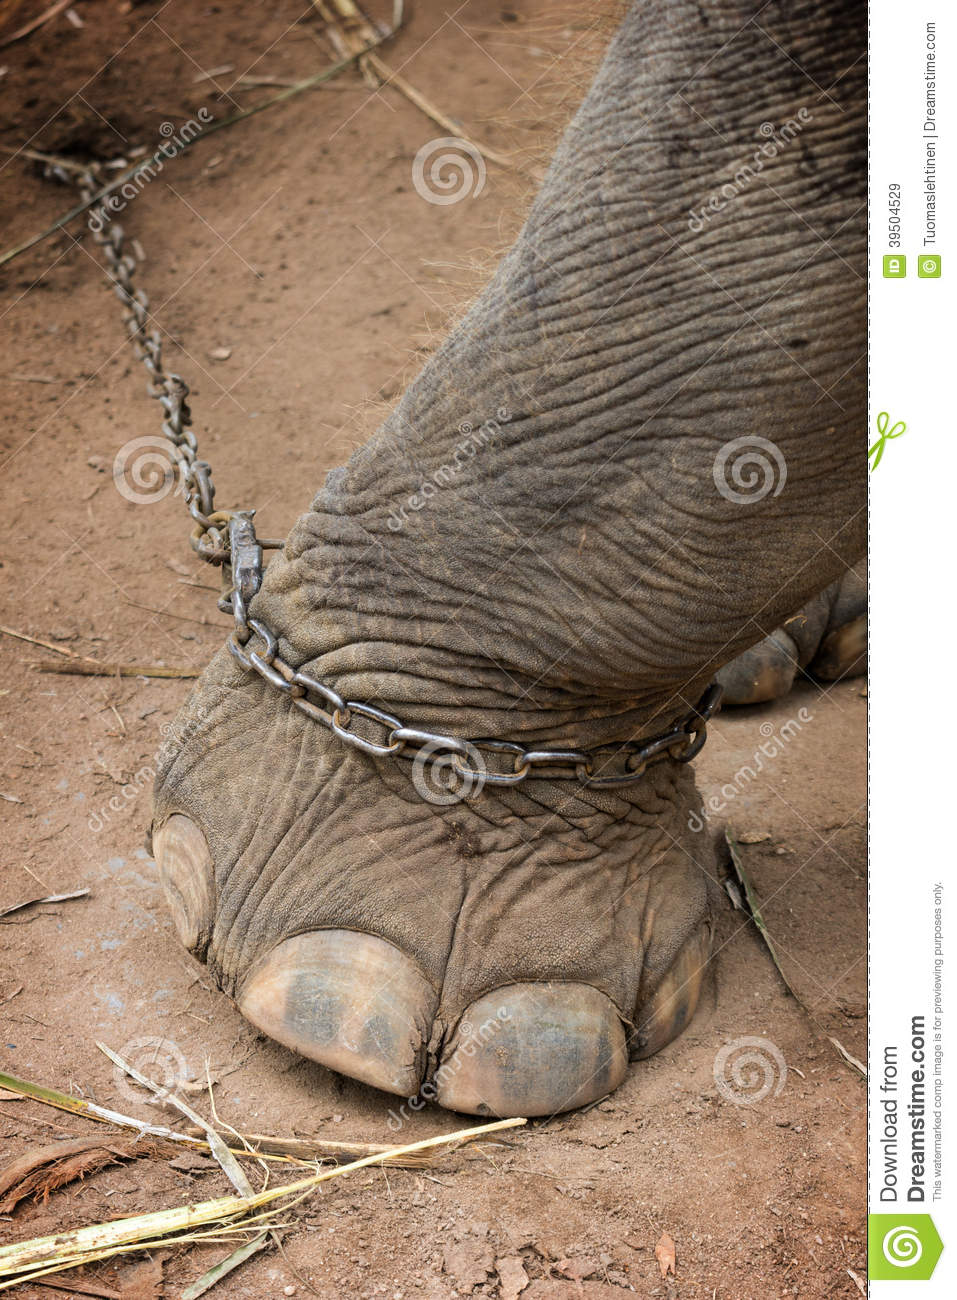 Elephants foot tied to a metal chain